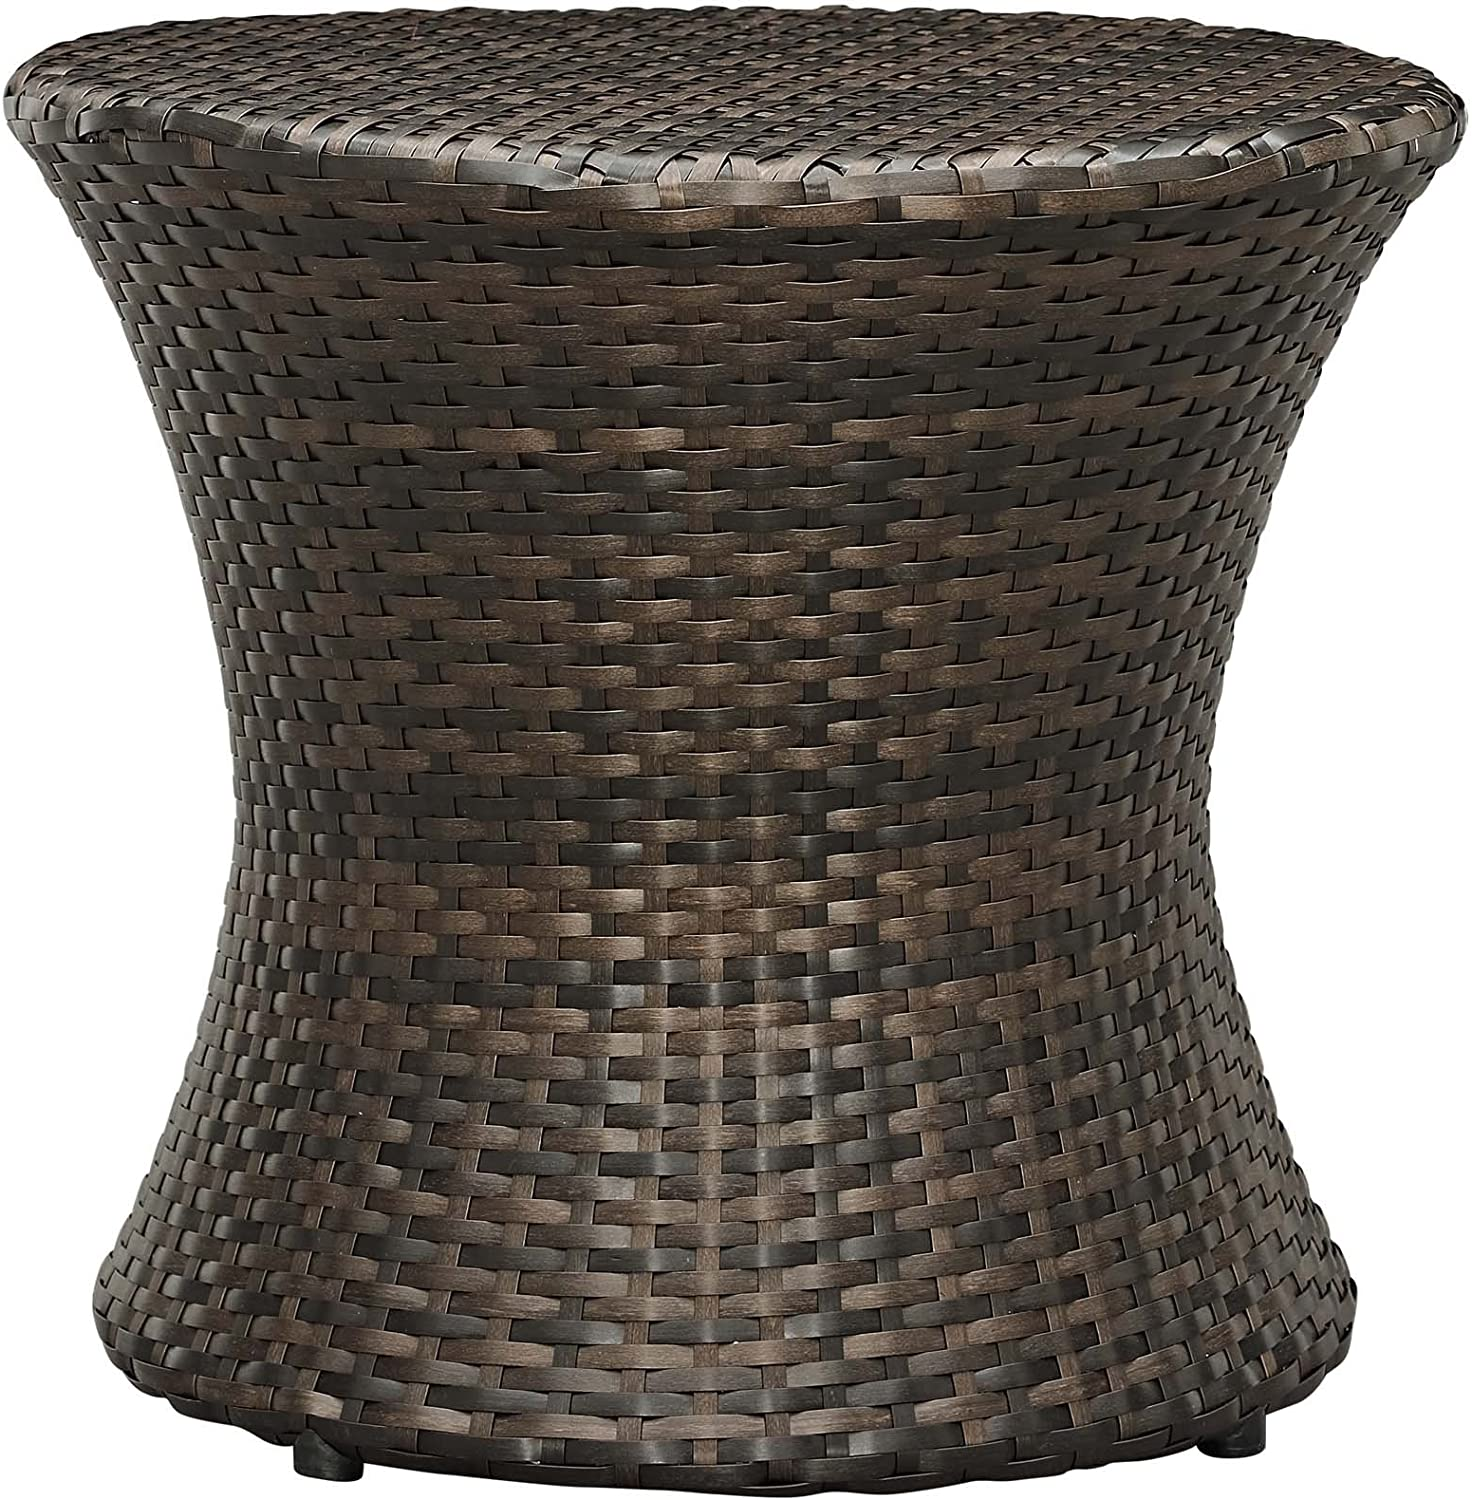 Modway EEI-2546-BRN Stage Wicker Rattan Outdoor Patio Side Table, Brown